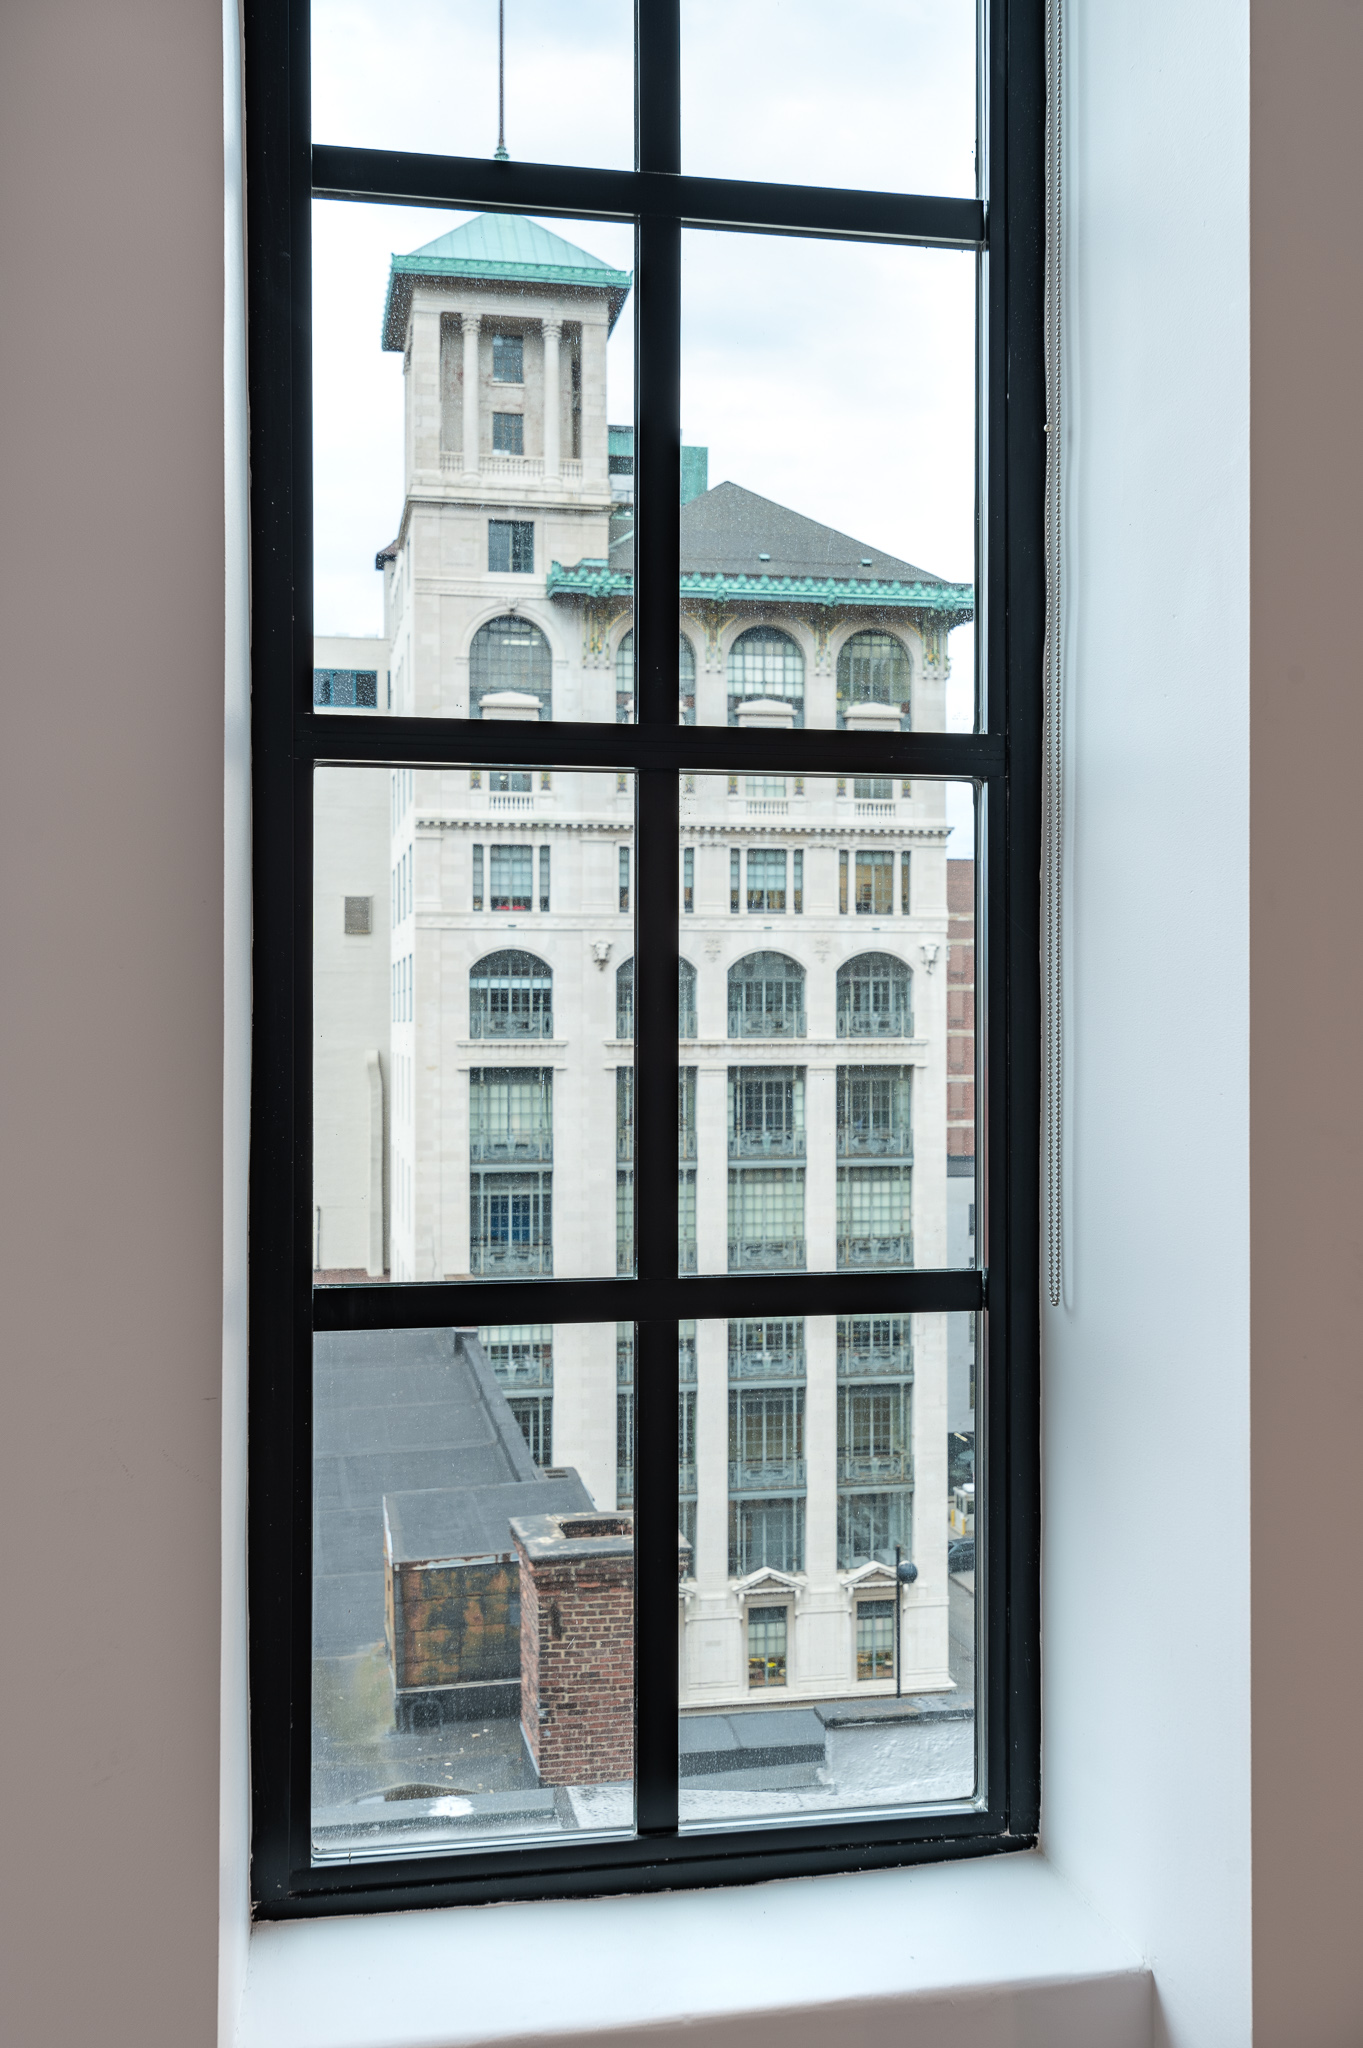 Sixth Street Exchange's upper floors have great views of Downtown and surrounding buildings, such as the Gwynne Building to the east. / Image: Phil Armstrong, Cincinnati Refined // Published: 12.25.19